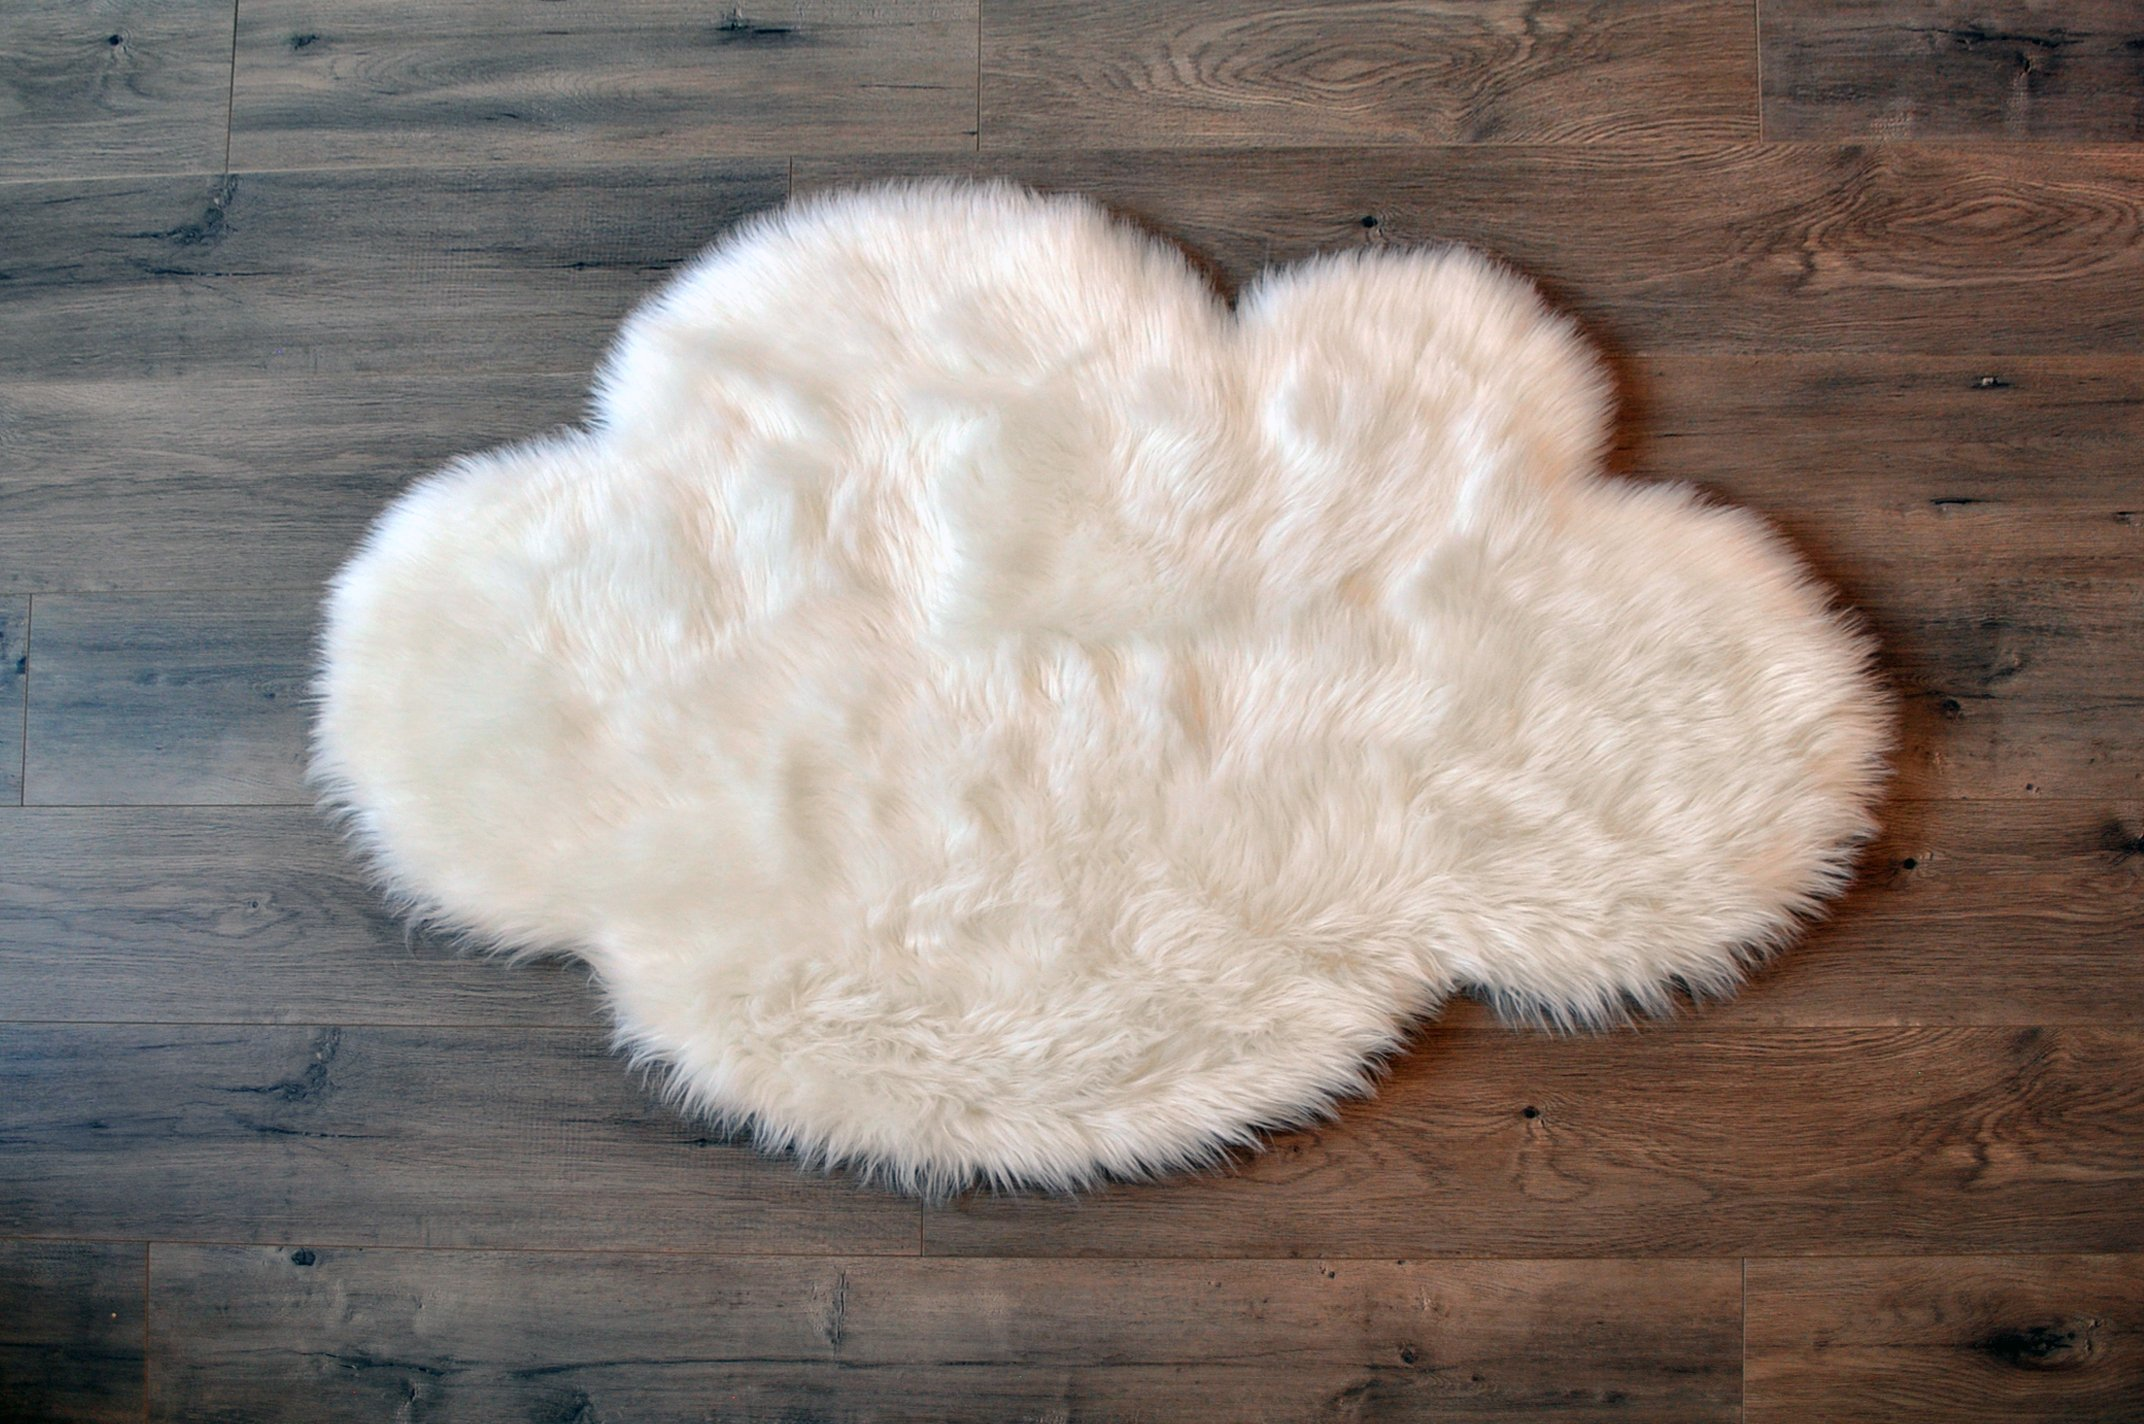 Machine Washable Faux Sheepskin White Cloud Area Rug 32'' x 44'' - Soft and silky - Perfect for baby's room, nursery, playroom (2' 7'' x 3' 7'') - White Cloud